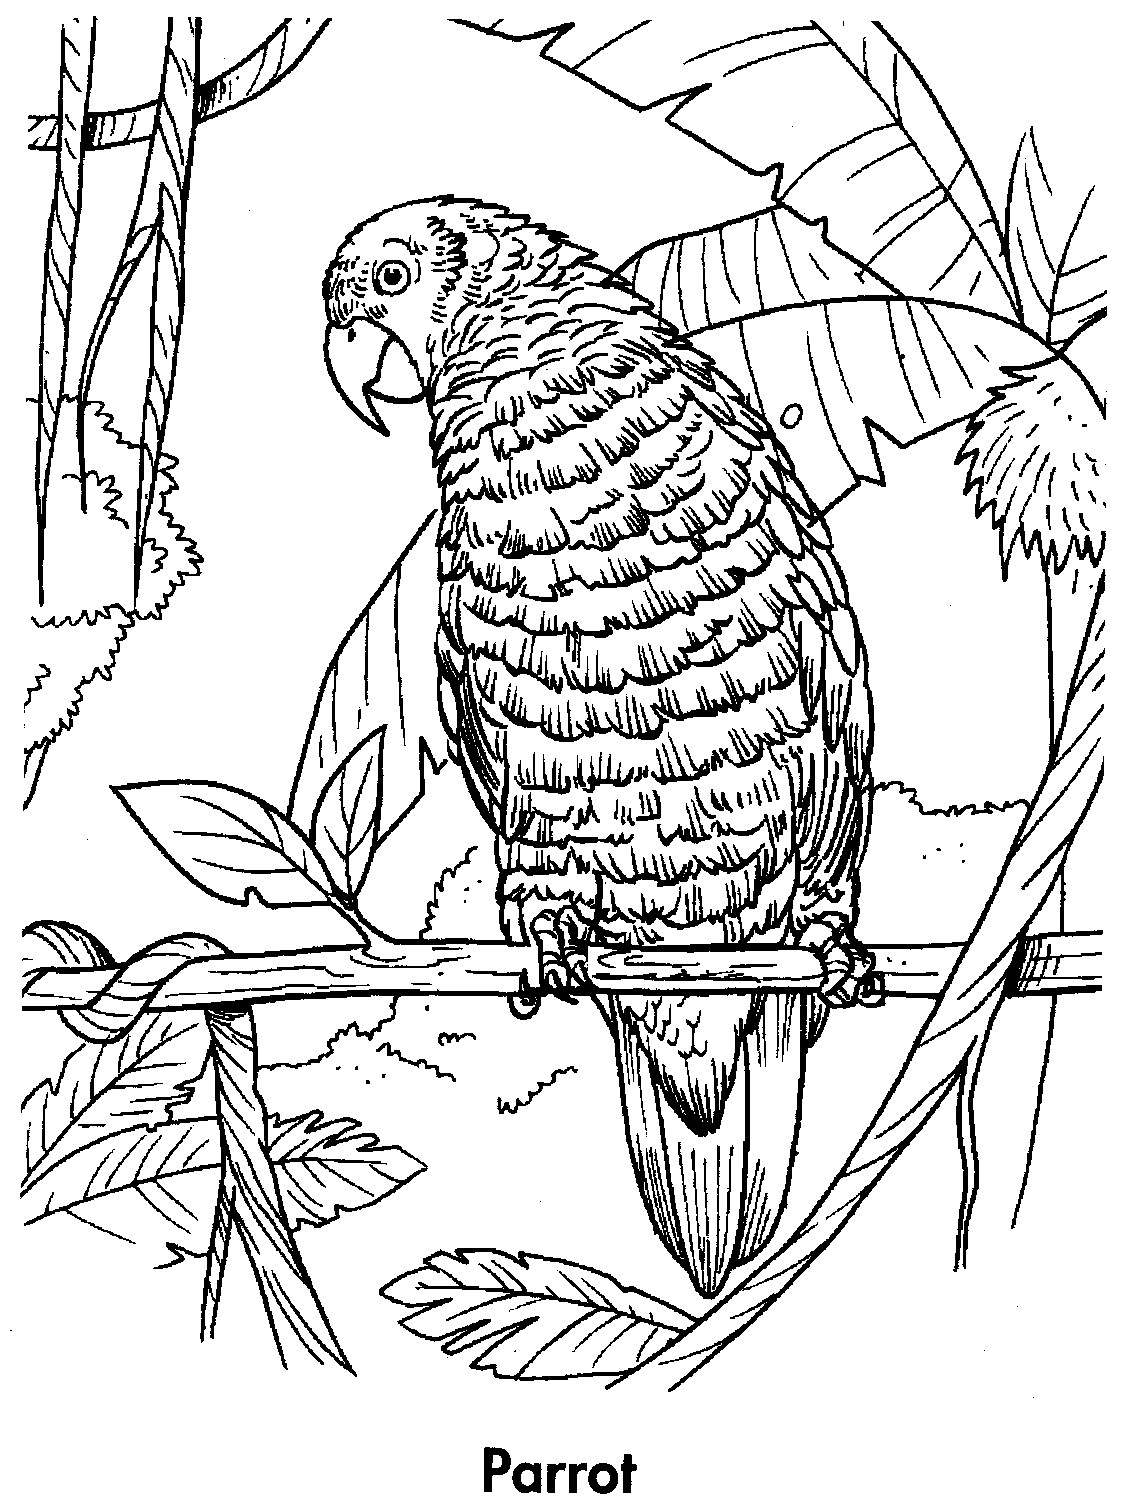 coloring parrot images free parrot and macaw coloring pages coloring parrot images